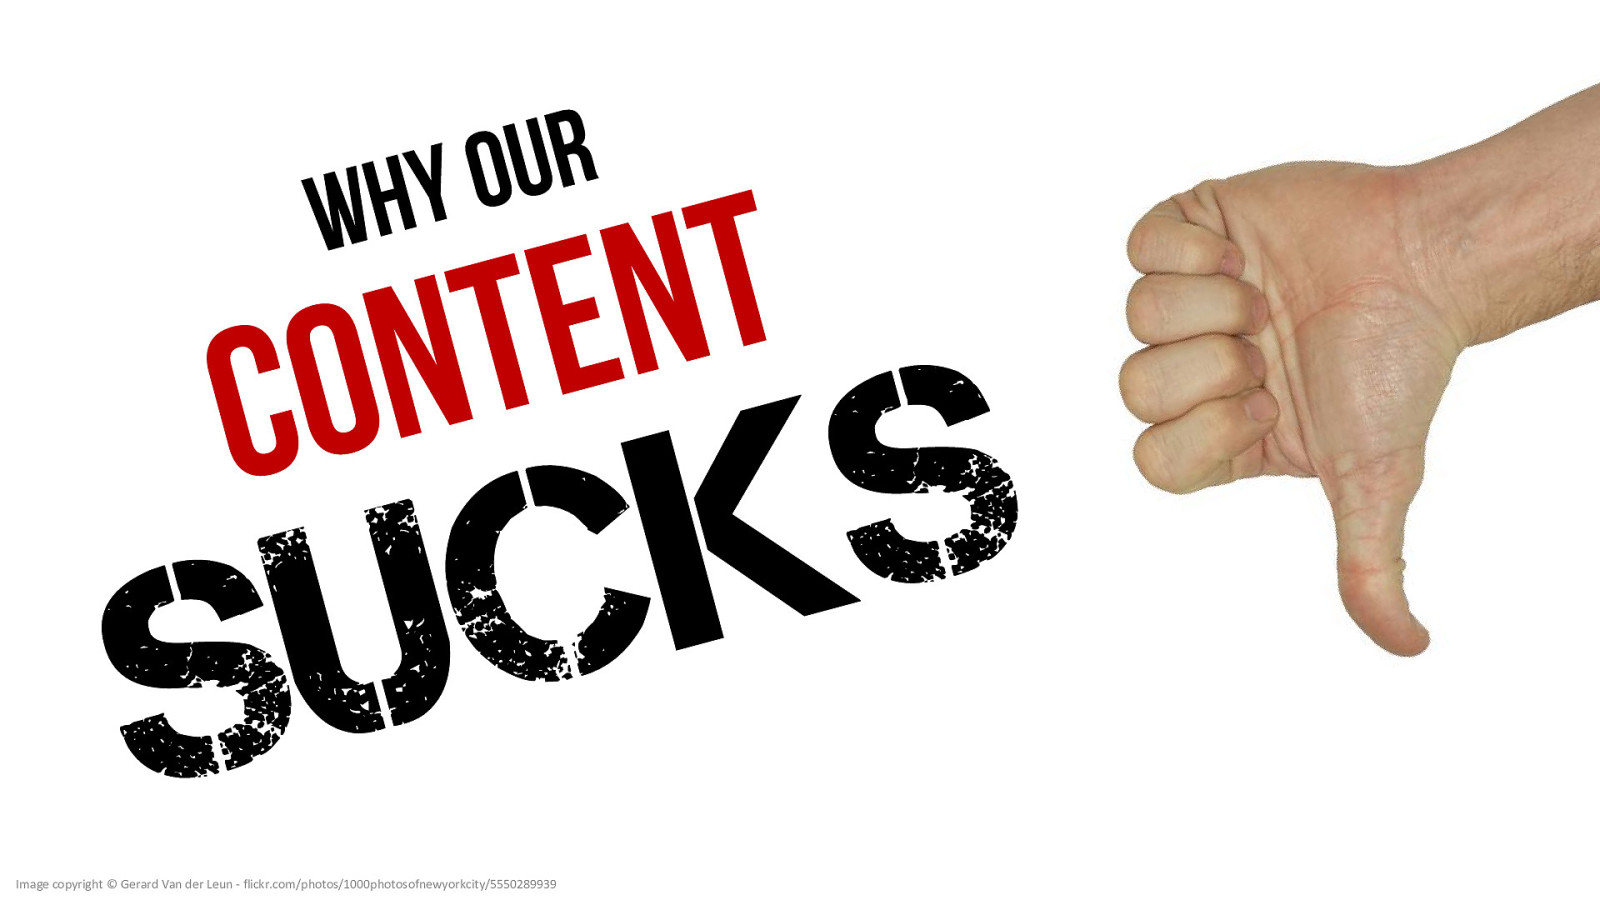 Why Our Content Sucks (and what we can do about it)